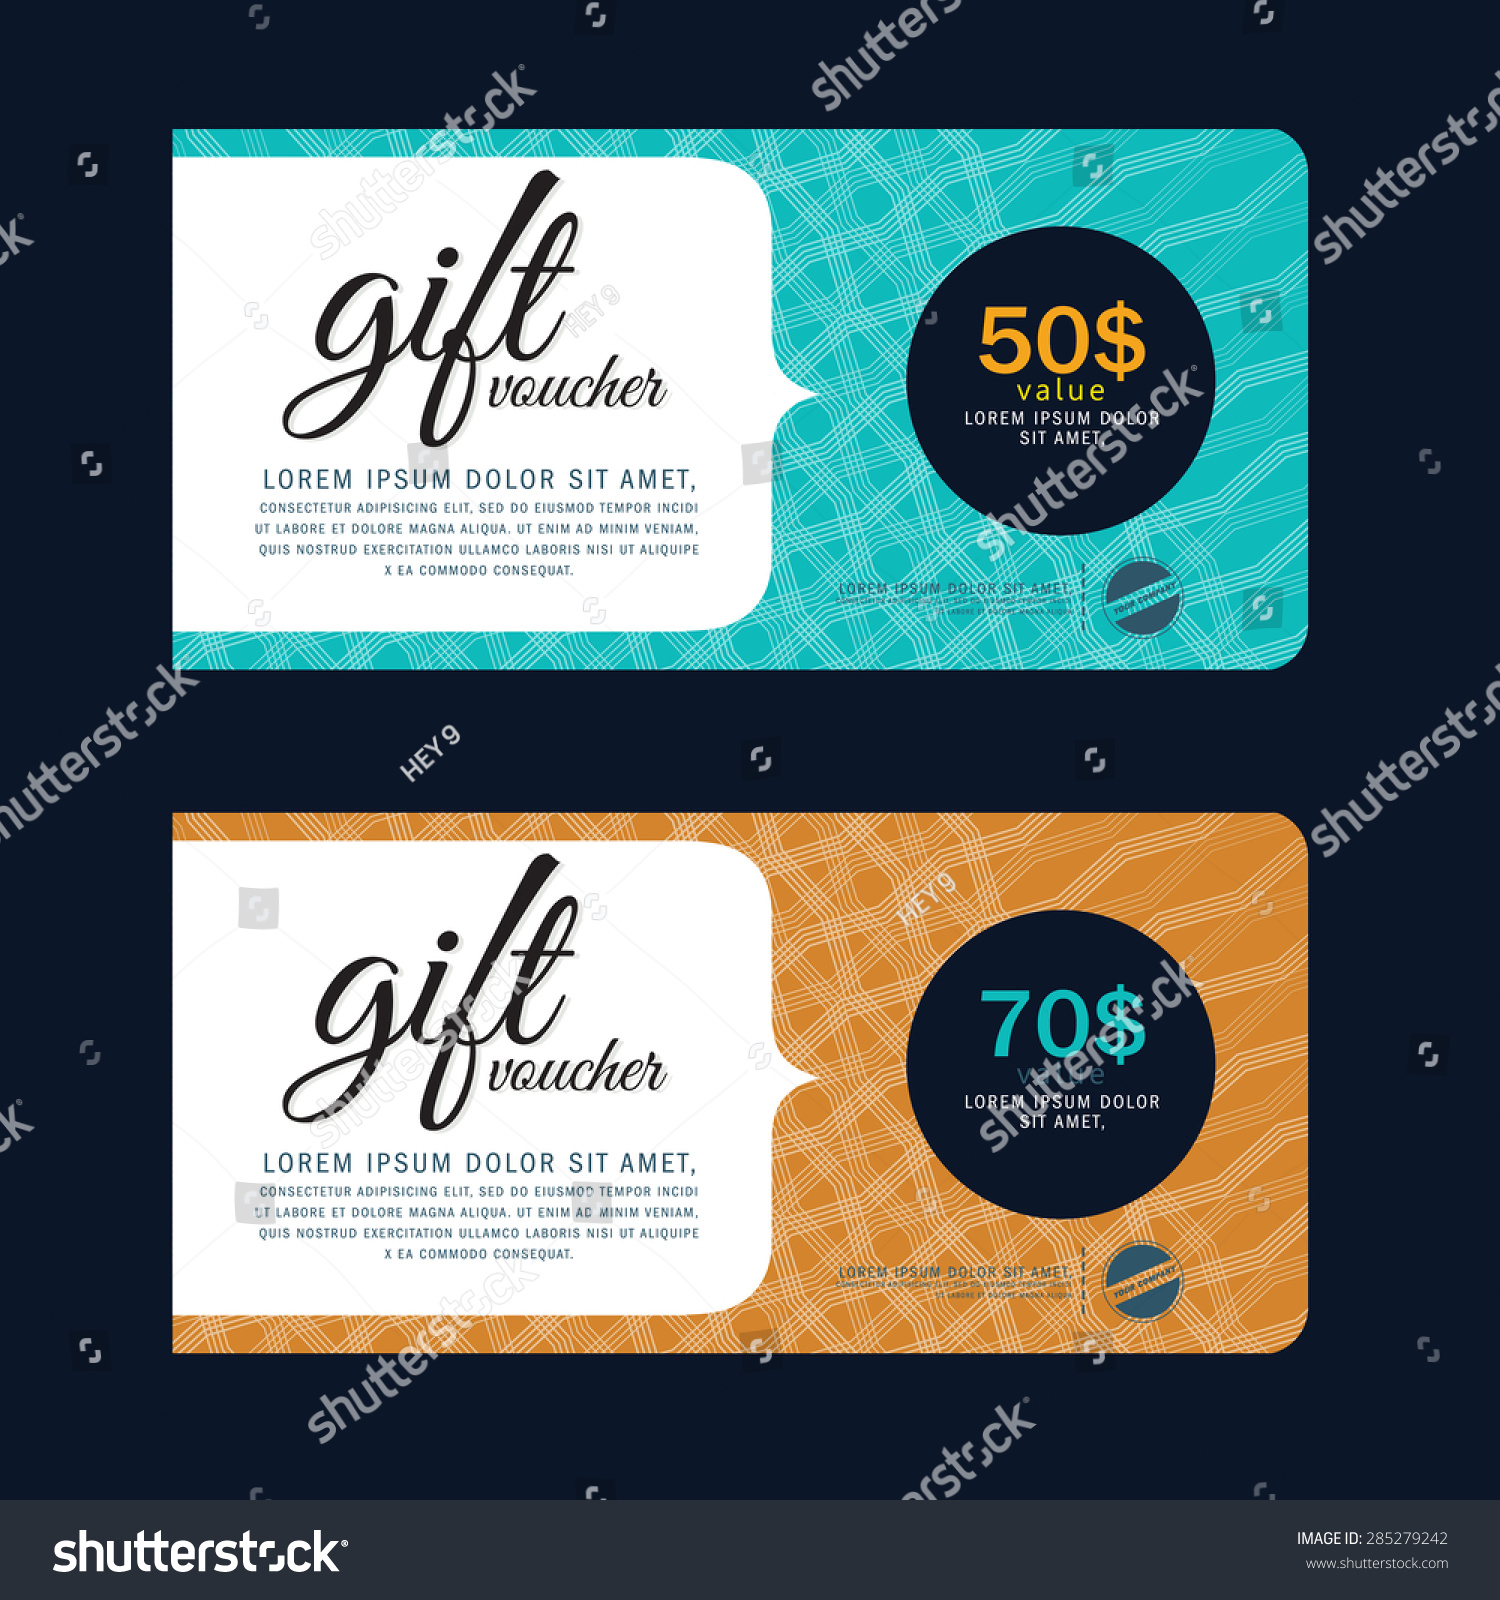 Gift voucher curved